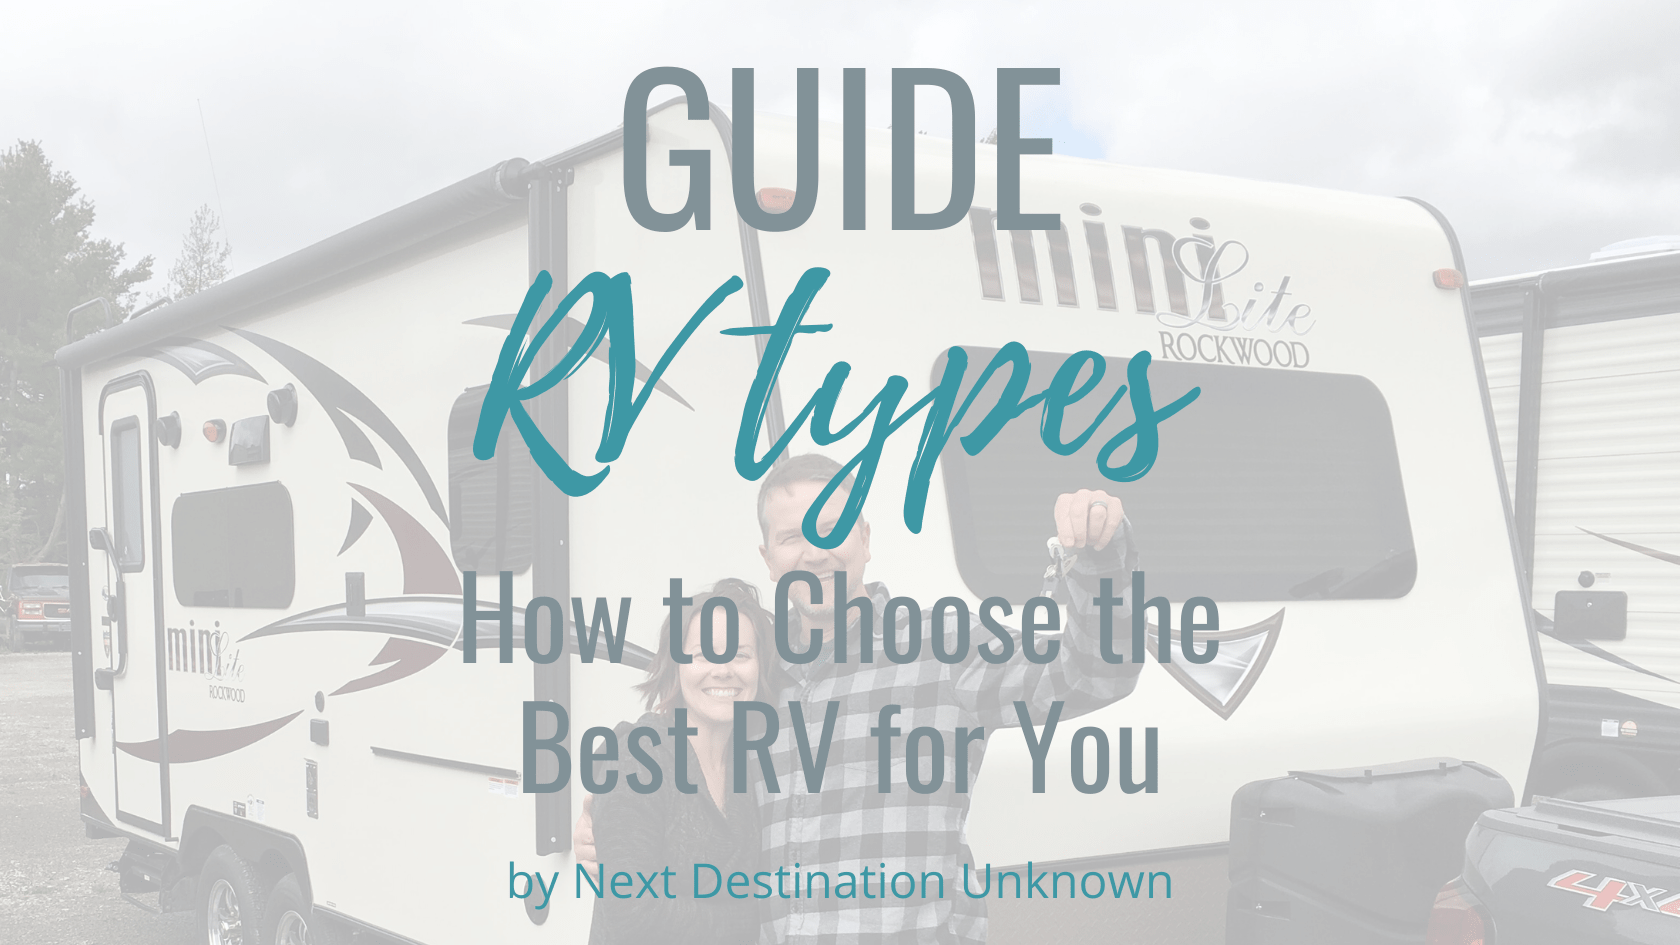 Guide to RV Types and How to Choose the Best RV for You